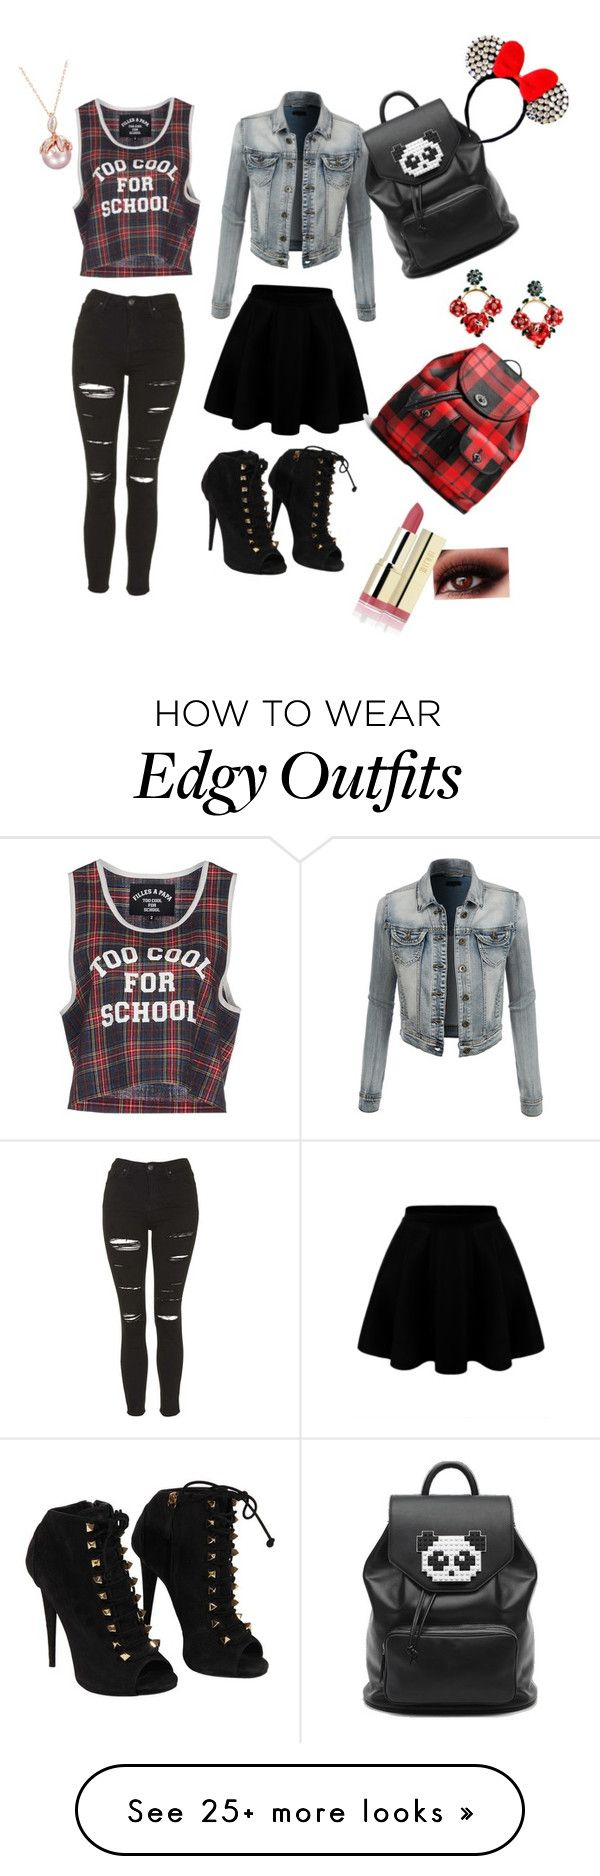 Best 25+ Edgy school outfits ideas on Pinterest | Edgy outfits Ootd and Tumblr fall outfits